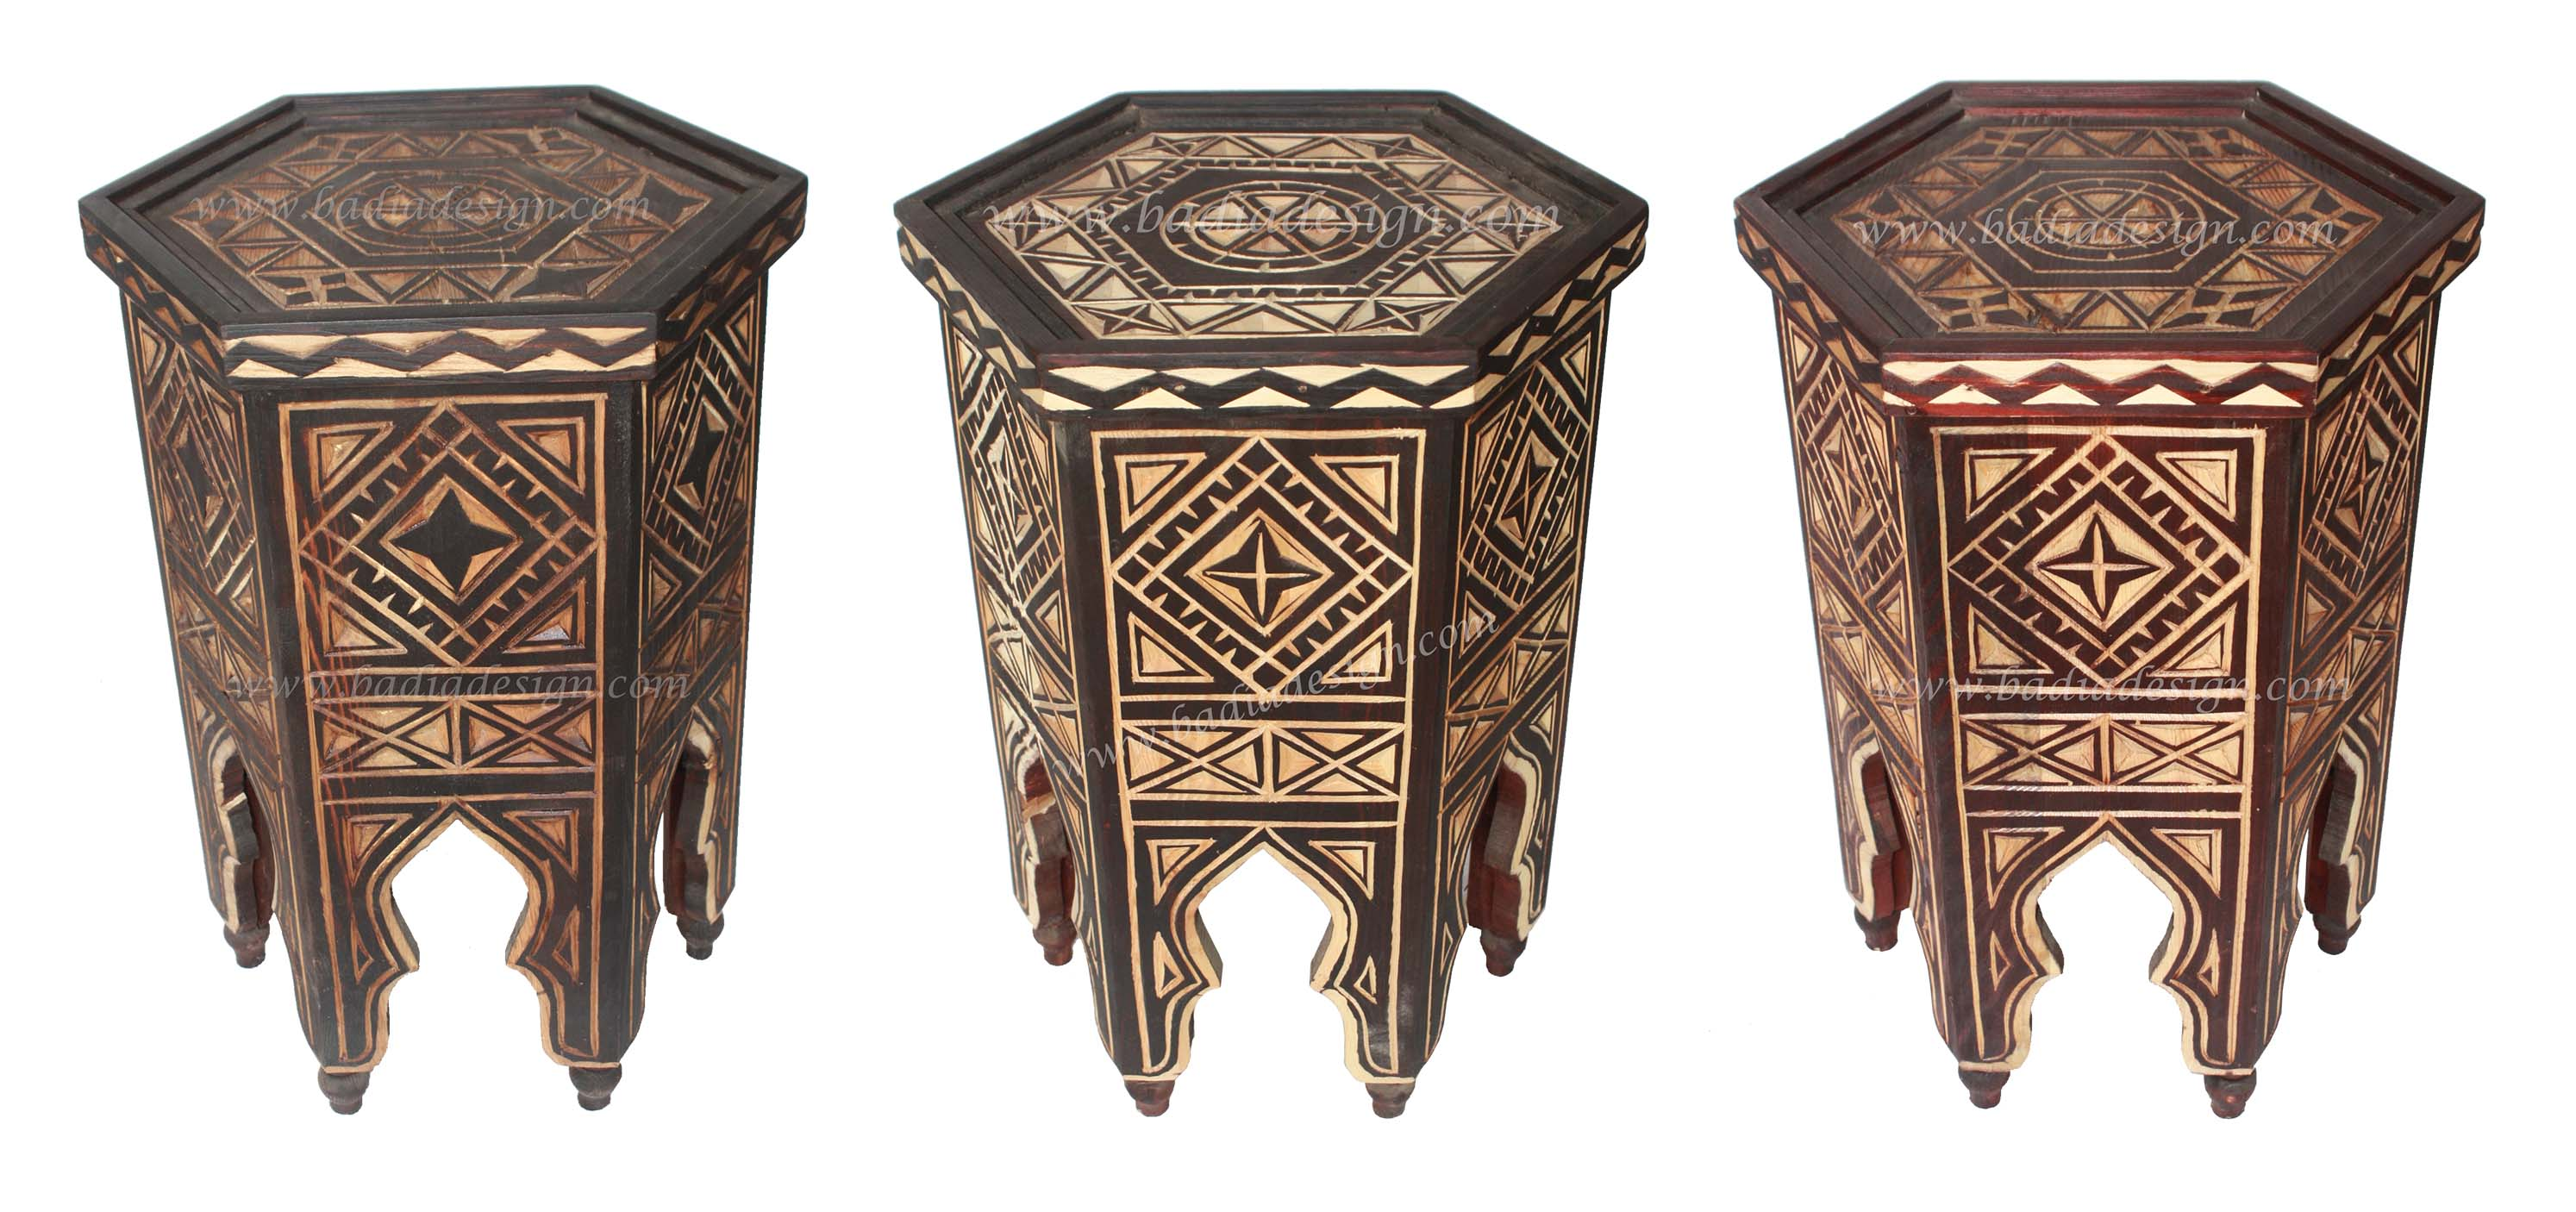 moroccan-hand-carved-wooden-side-table-cw-st048.jpg